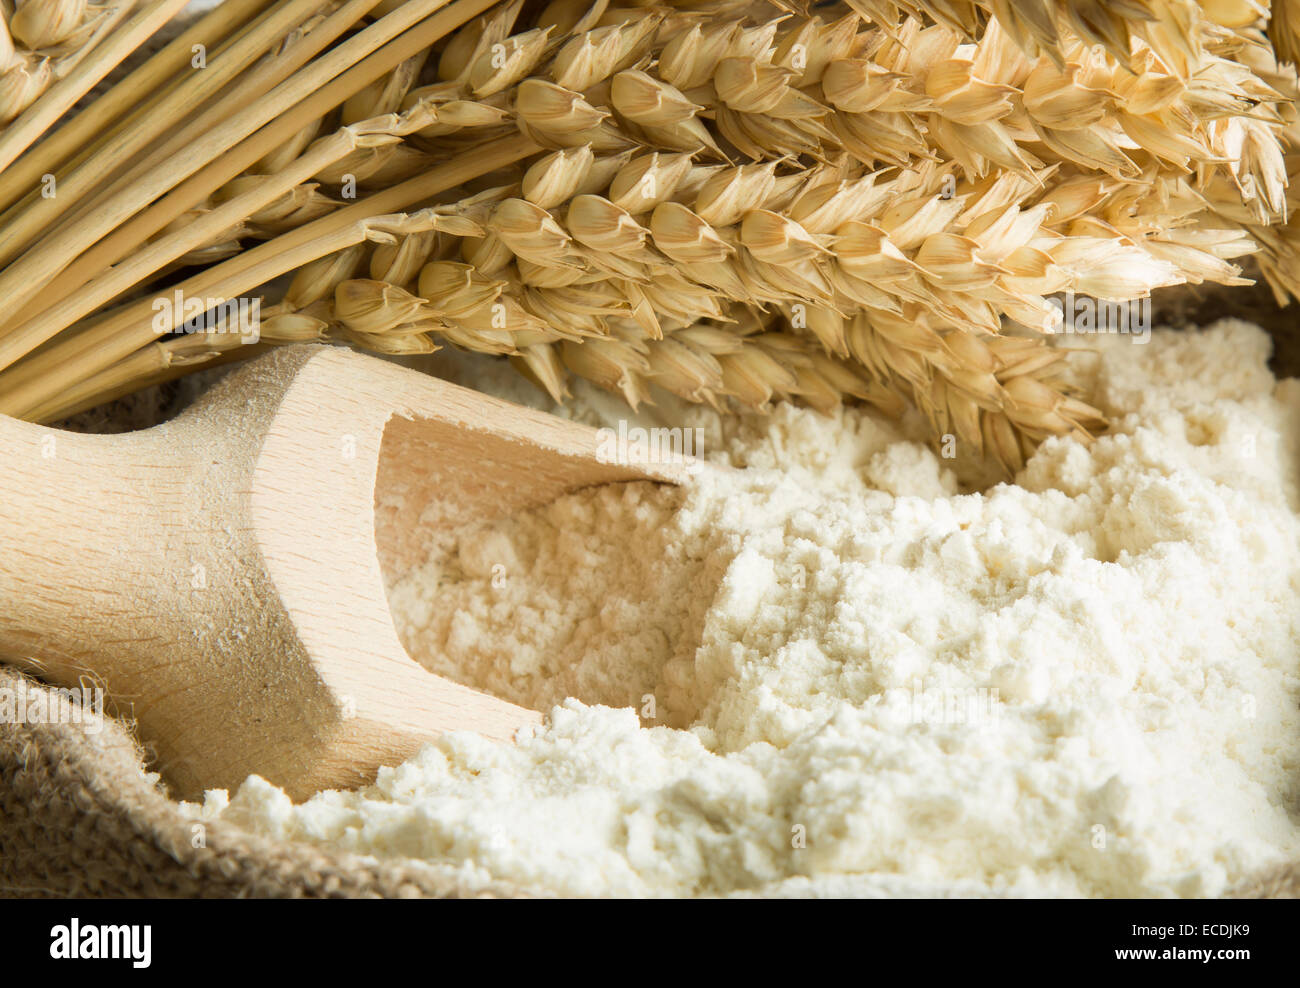 Flour in burlap bag and wheat ears - Stock Image